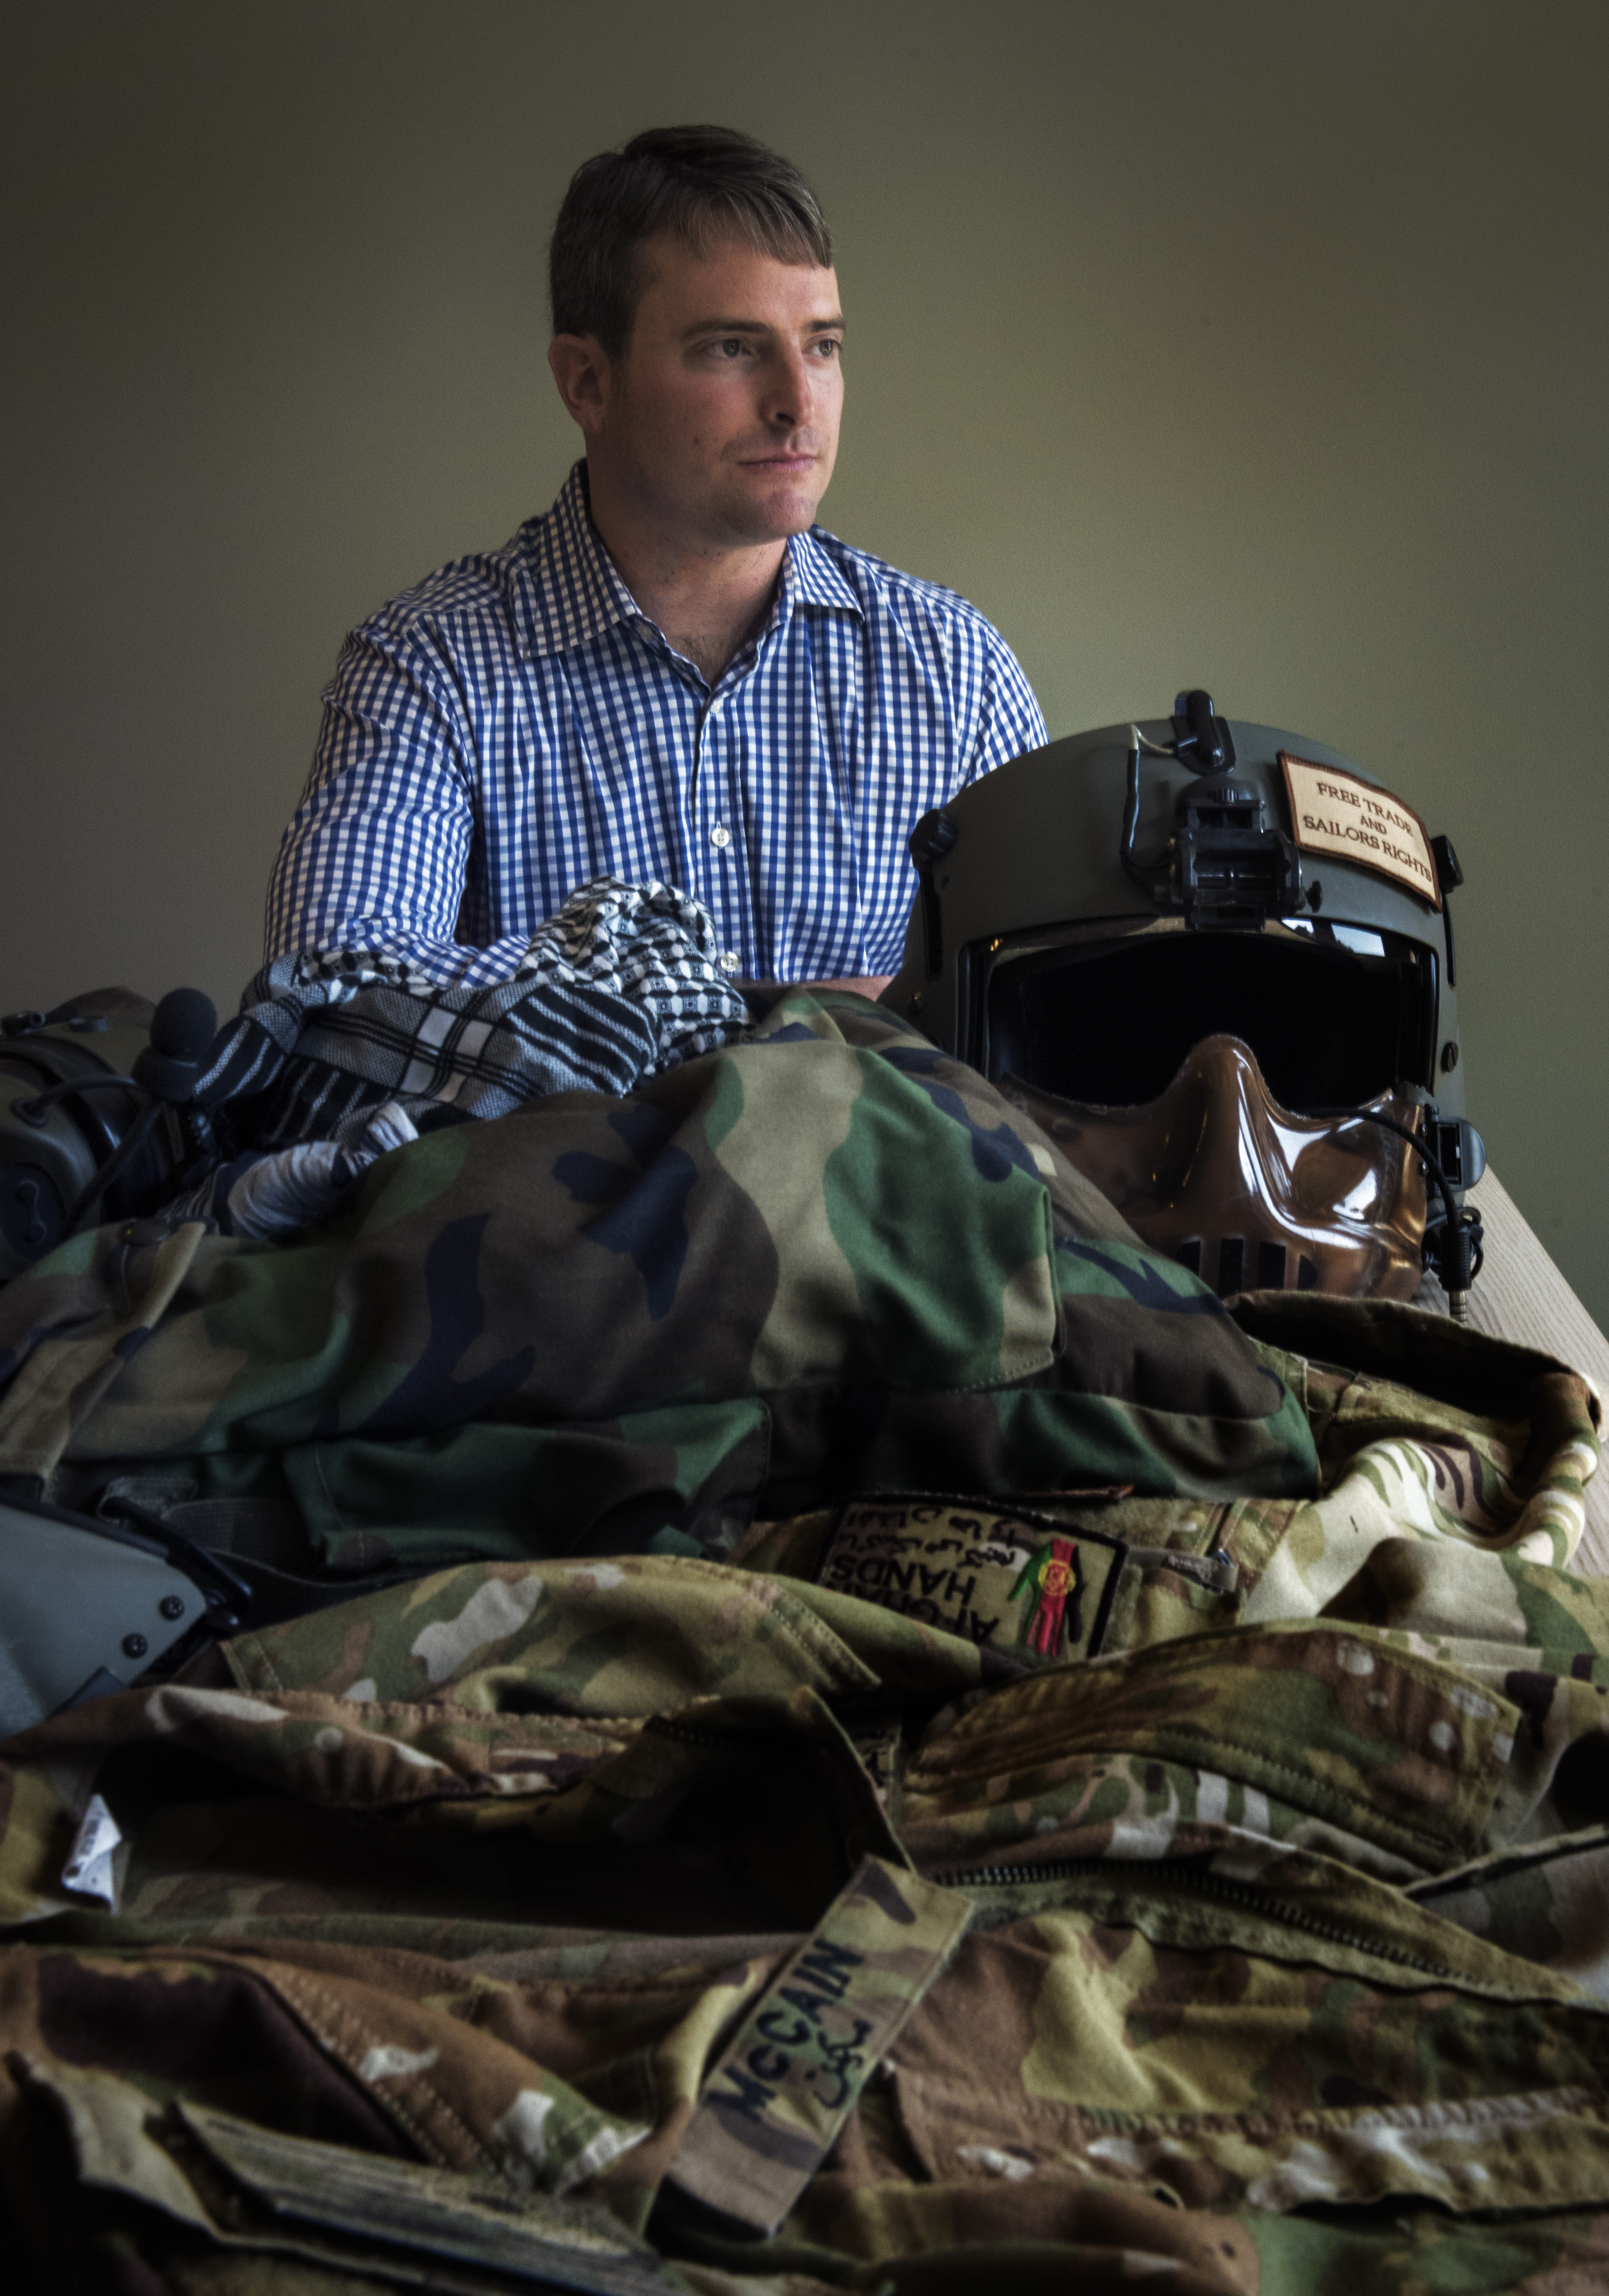 Jack McCain, son of Sen. John McCain, last month at his home in Bethesda, Md., with items that he wore during his service in Afghanistan. MUST CREDIT: Washington Post photo by Bill O'Leary